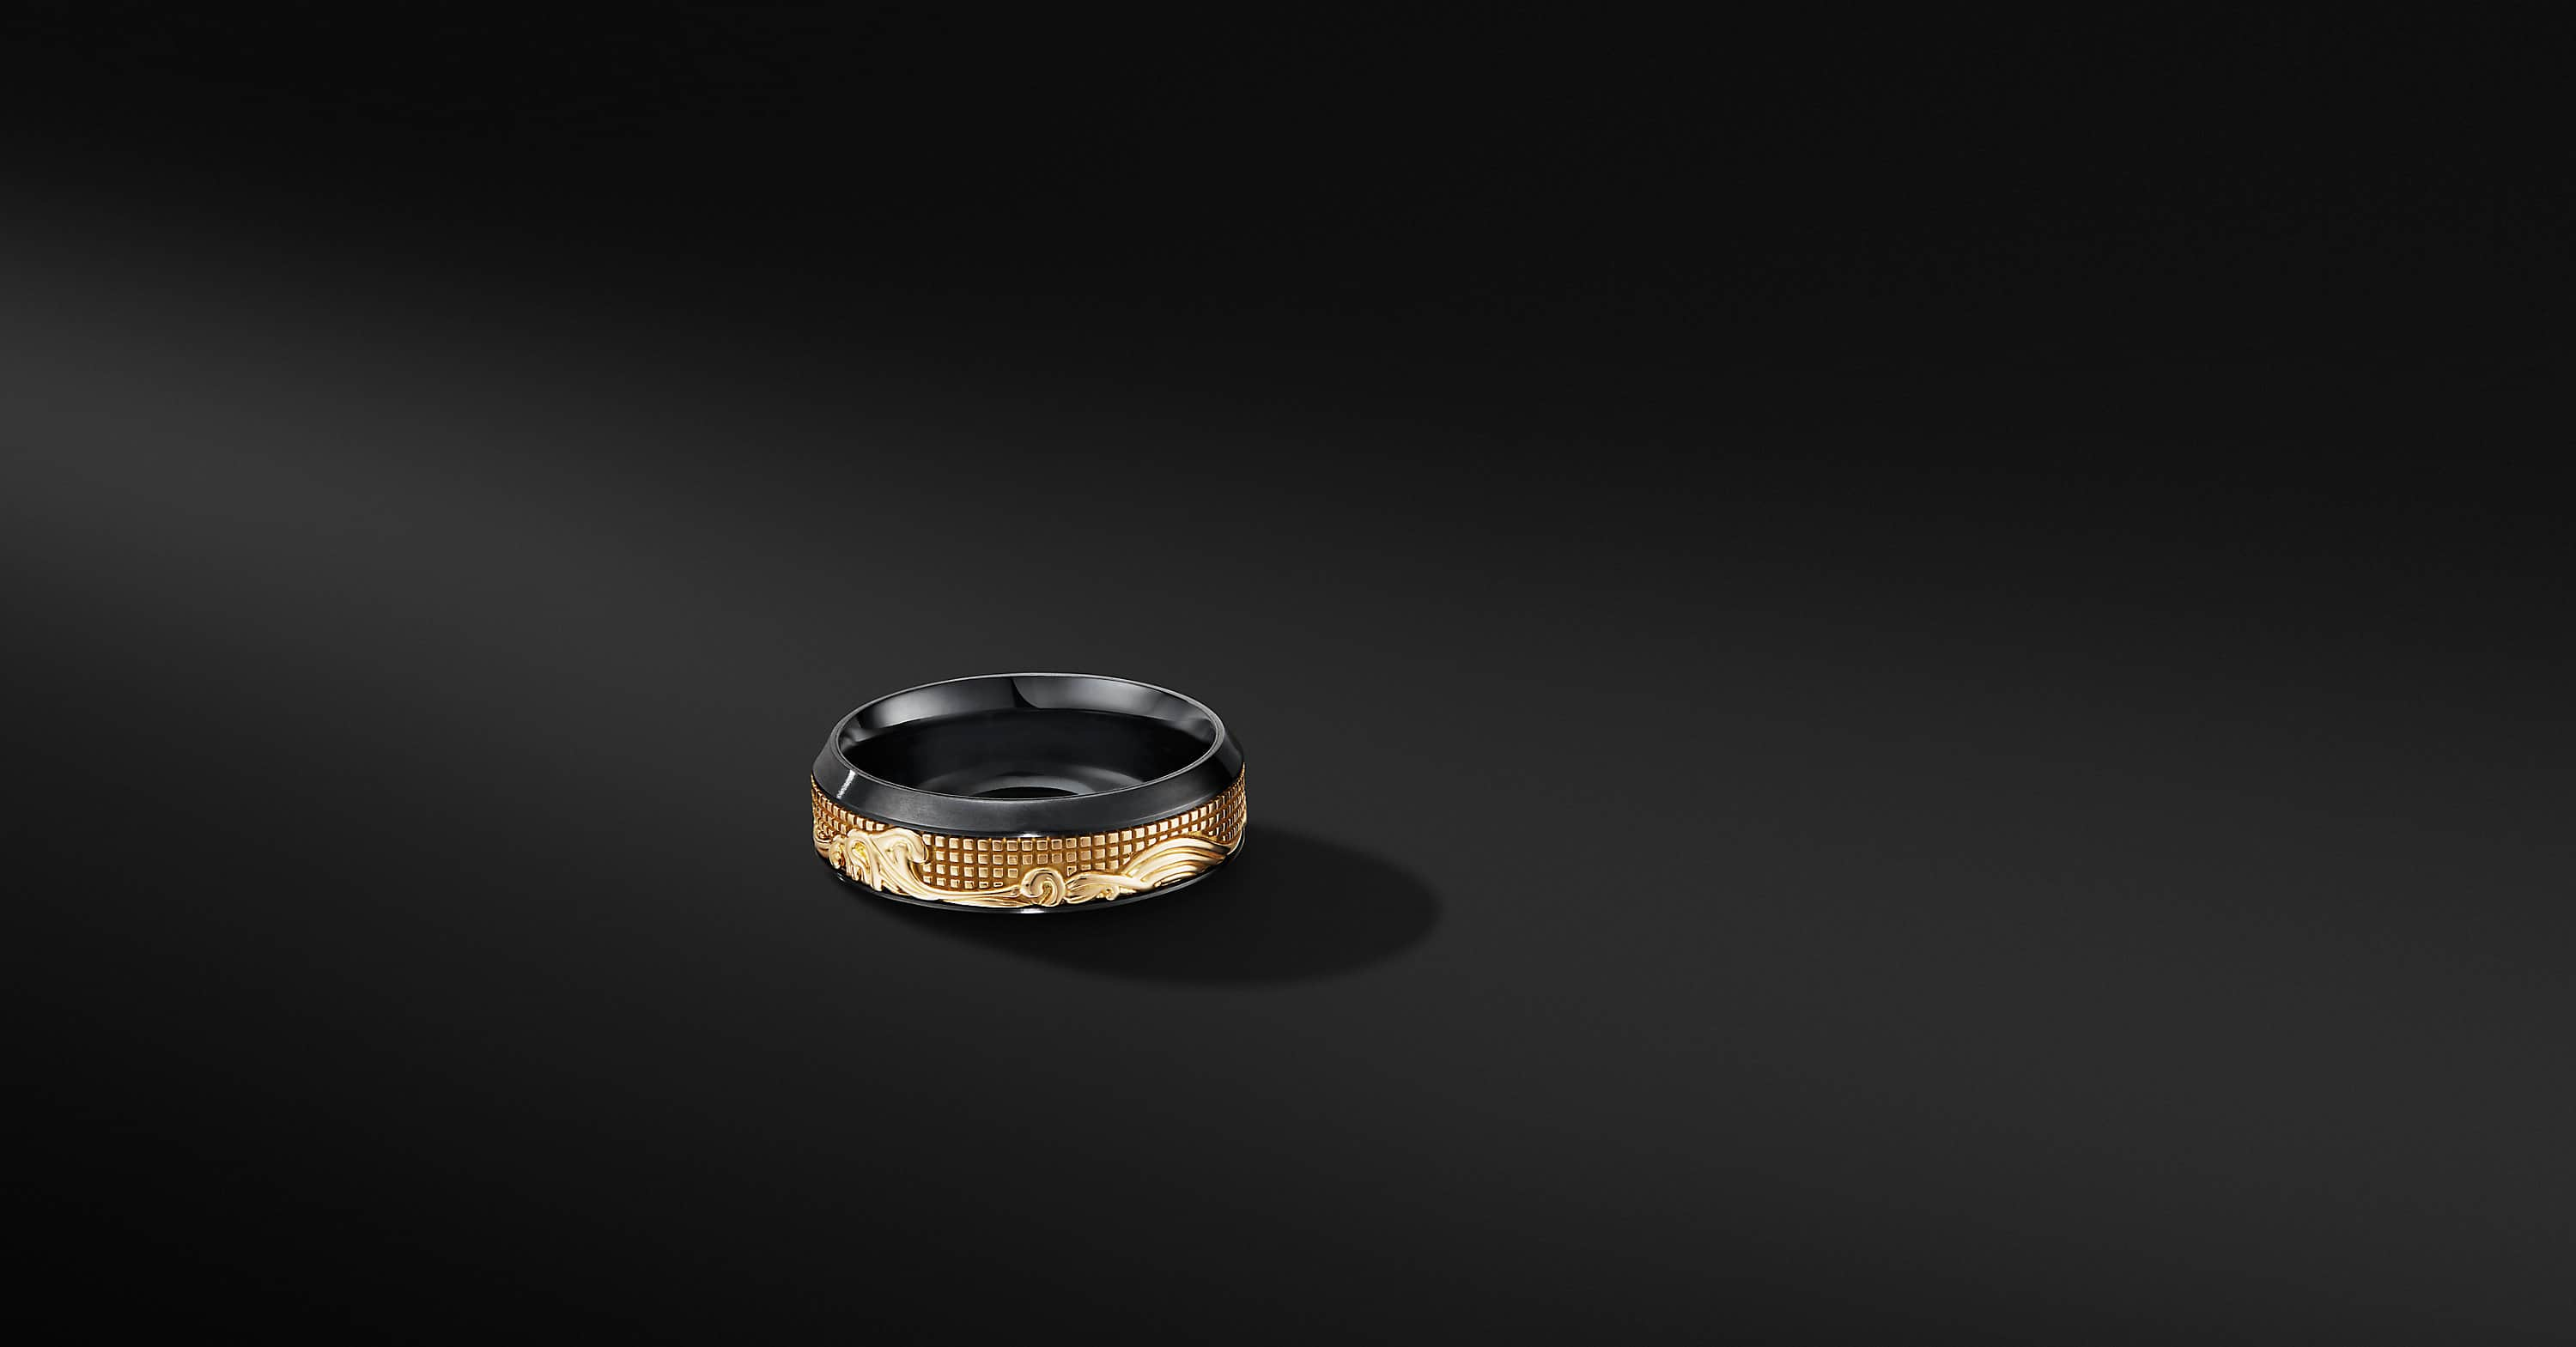 Waves Band Ring in Black Titanium with 18K Yellow Gold, 8mm